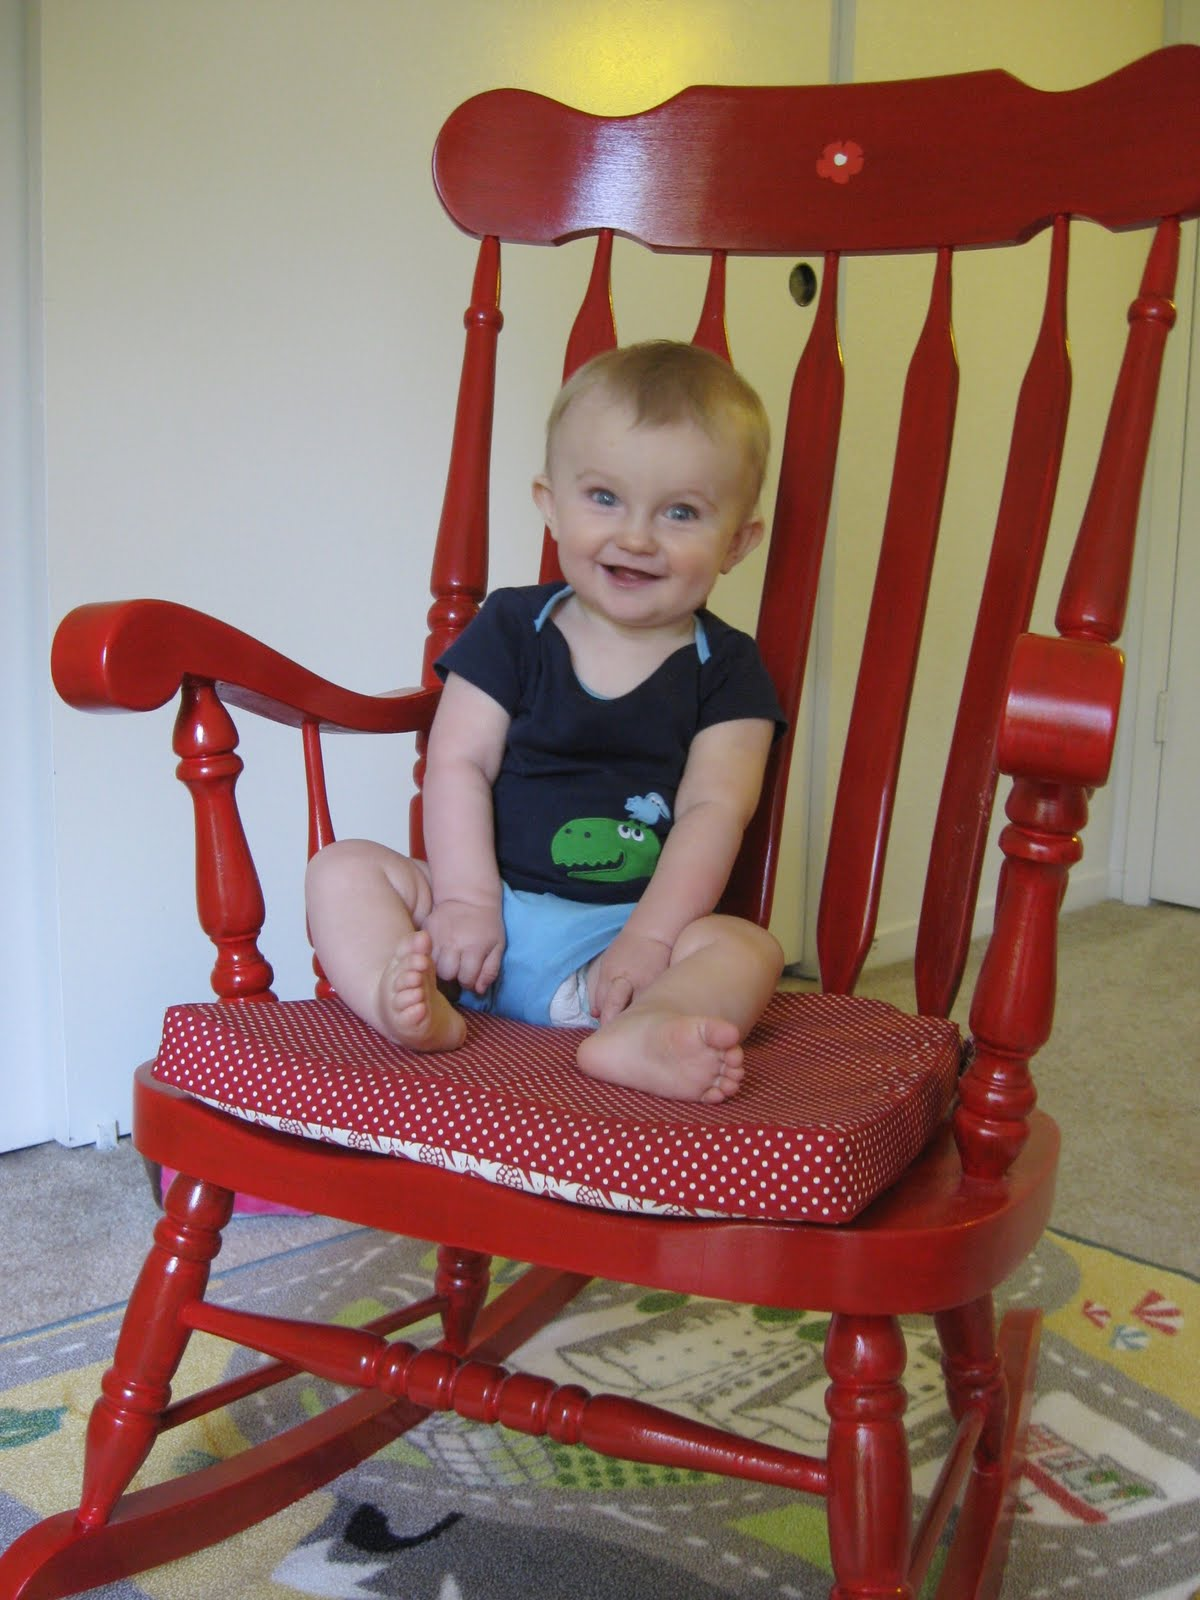 Awe Inspiring A Little Donnerwetter Red Rocking Chair Ncnpc Chair Design For Home Ncnpcorg